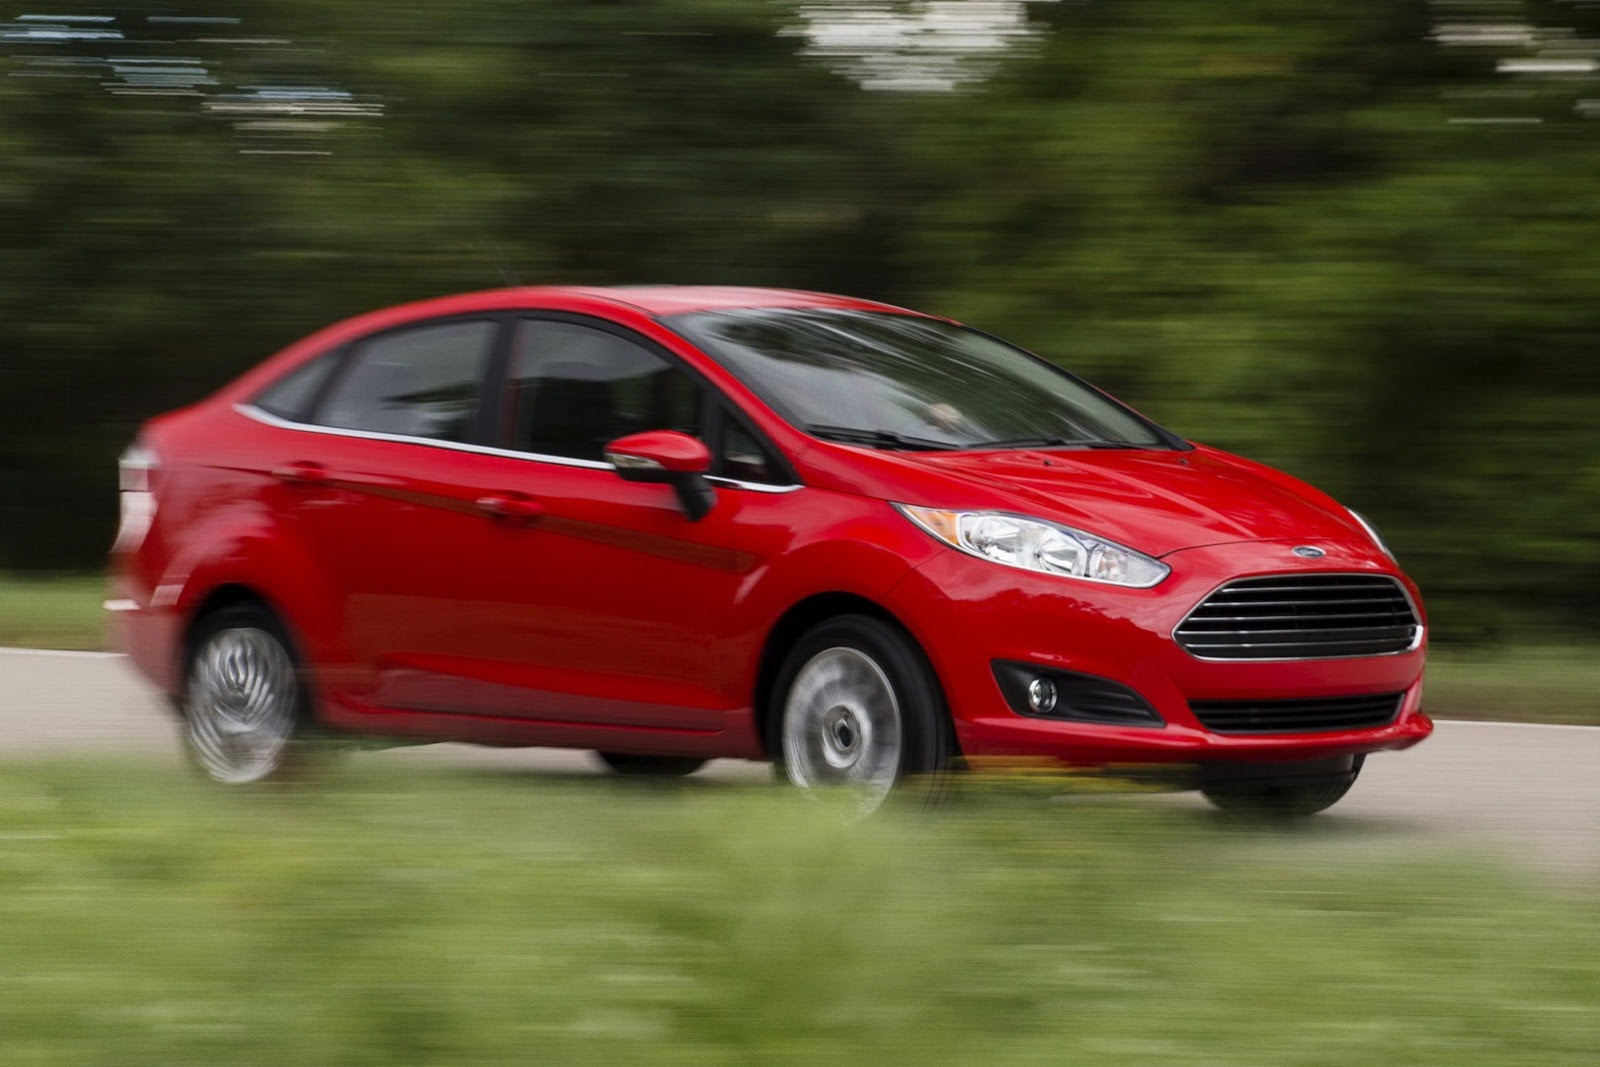 New Fiesta 2014 Ford New Fiesta 2014 Sedan Minuto Ligadominuto Ligado